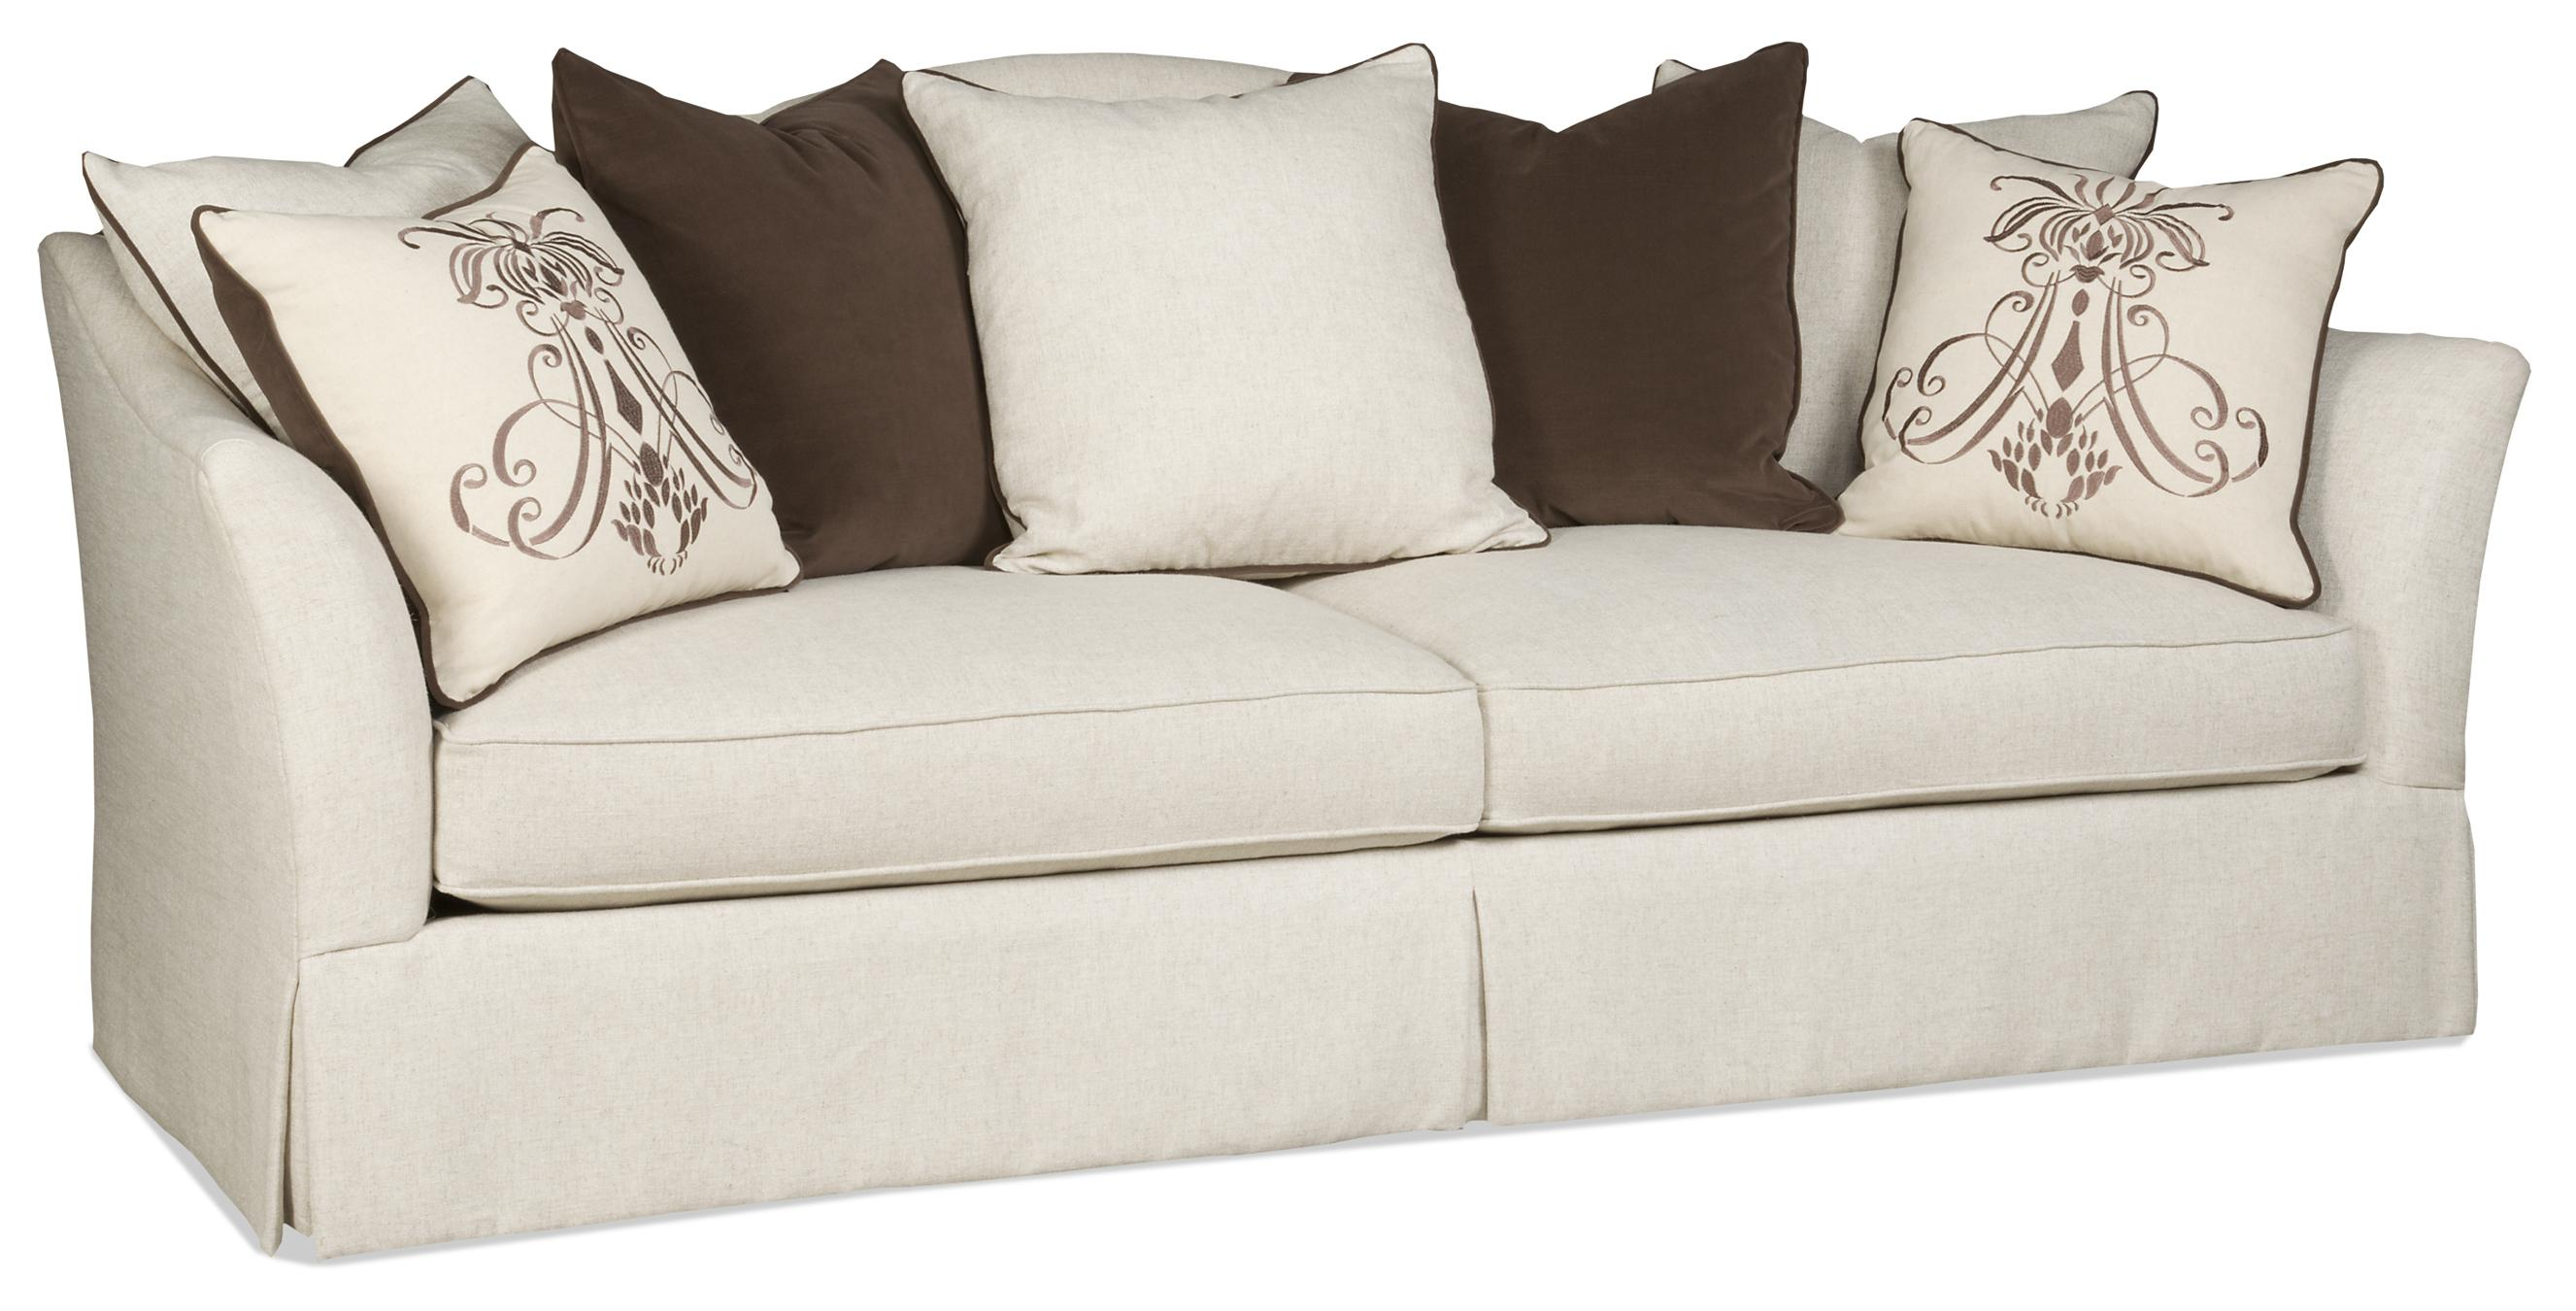 Transitional Scatterback Sofa With Flair Tapered Arms And Skirt